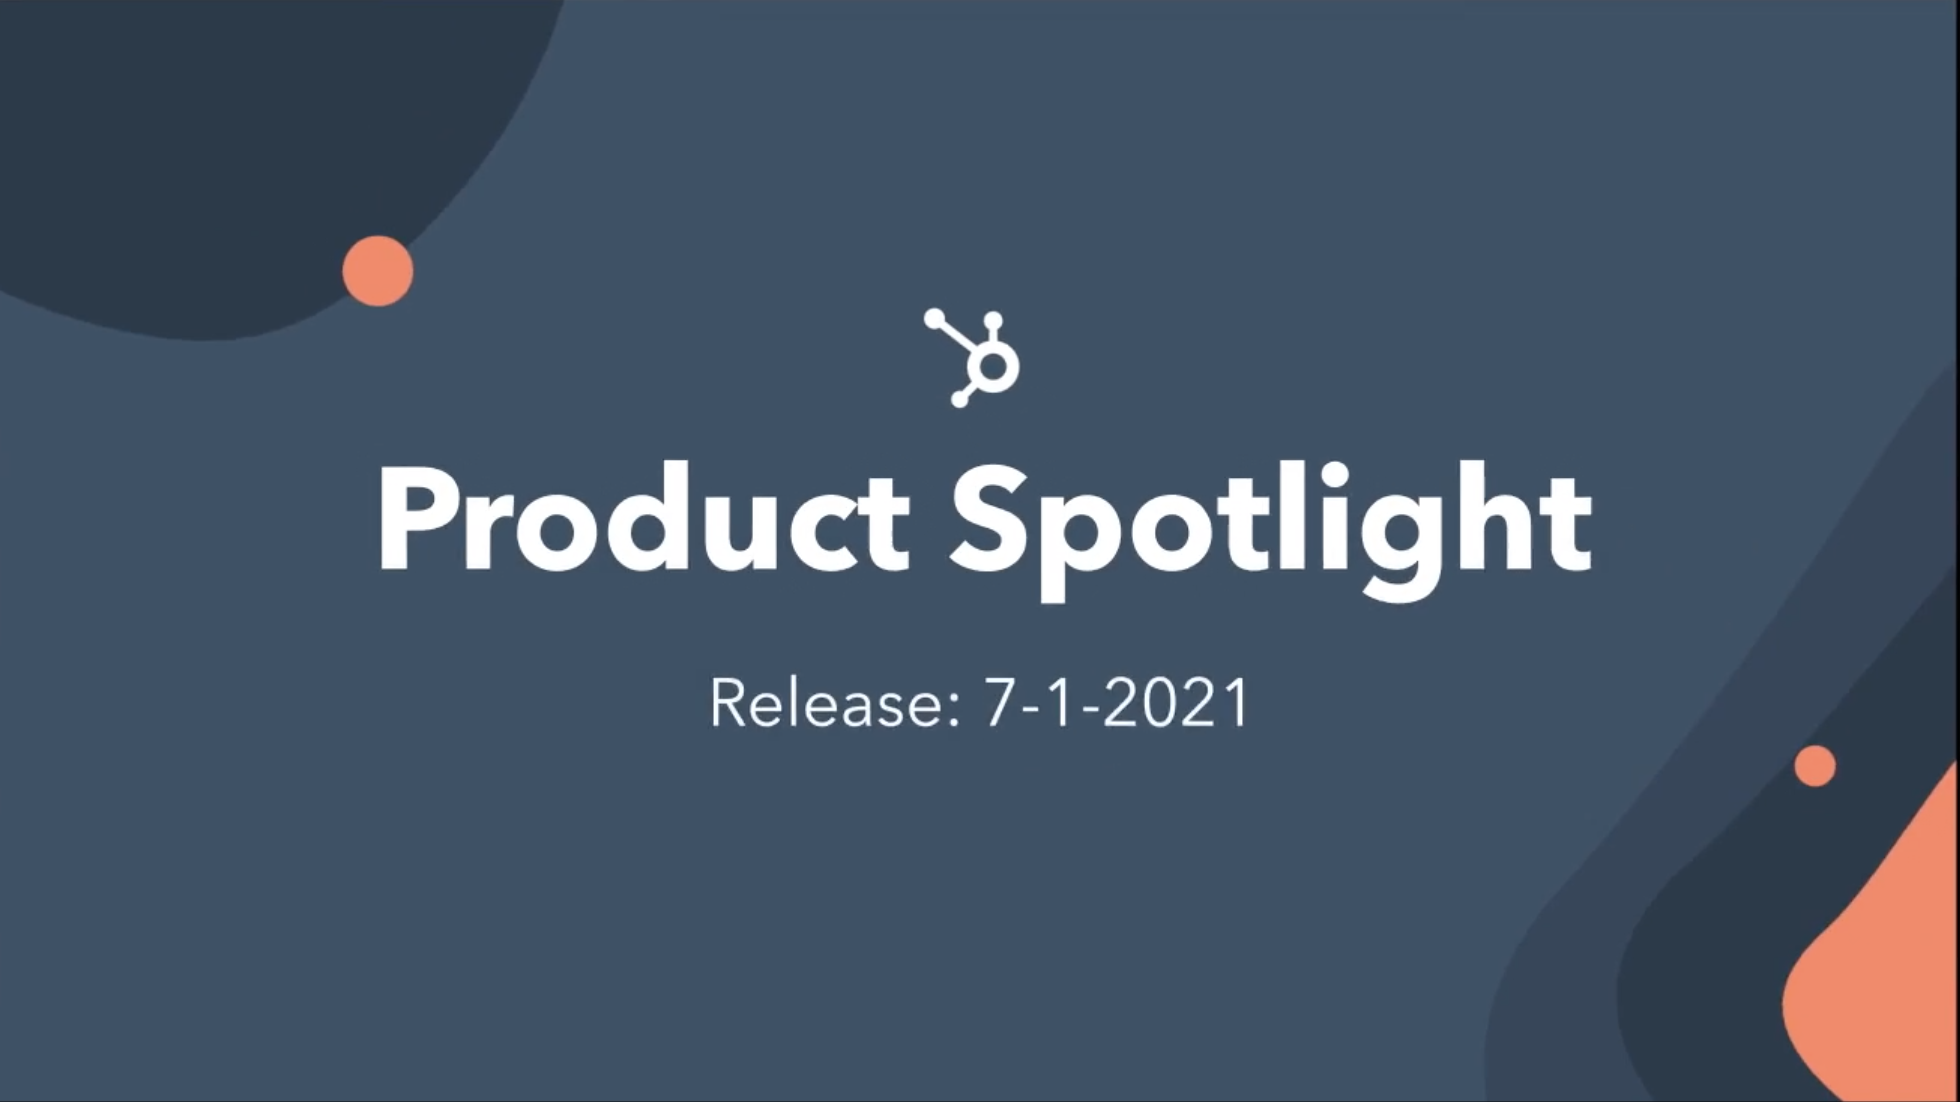 The Complete List of June 2021 Product Updates